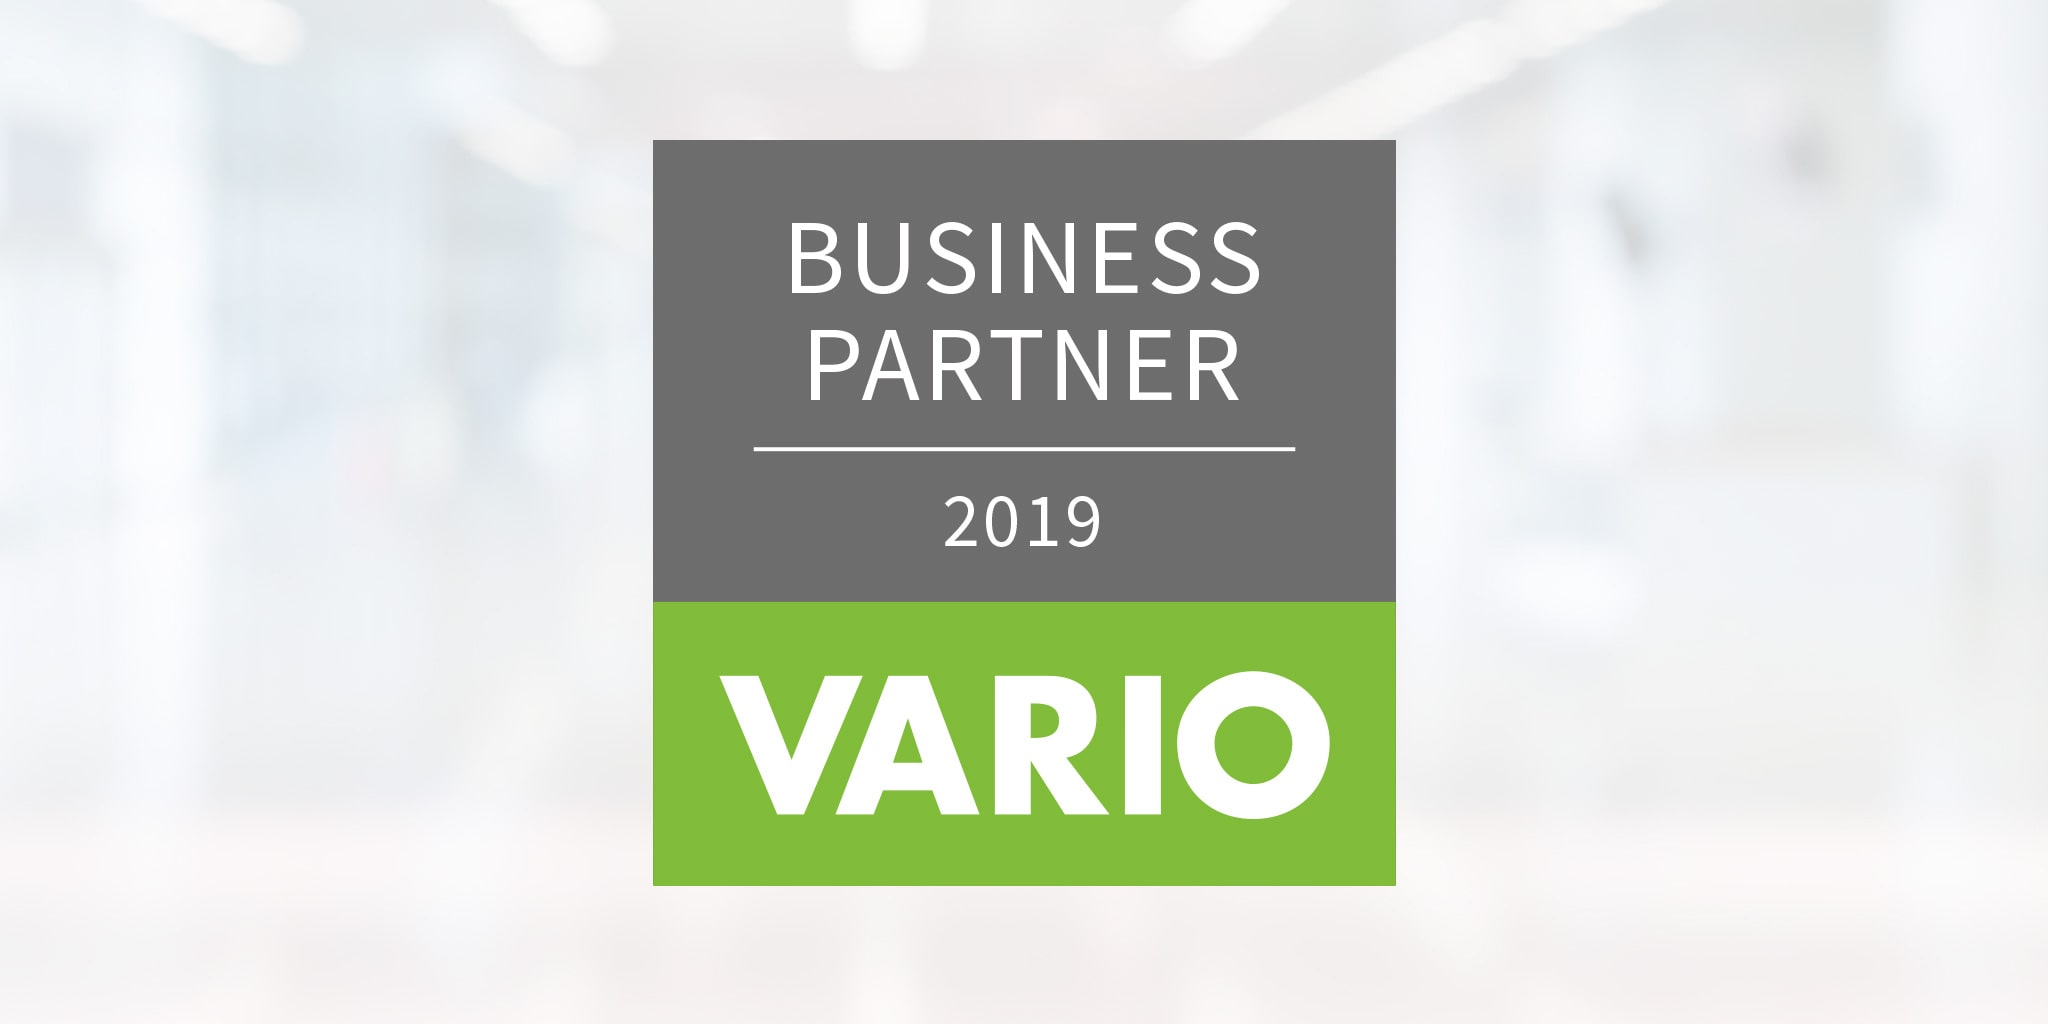 Firmensitz der VARIO Software AG